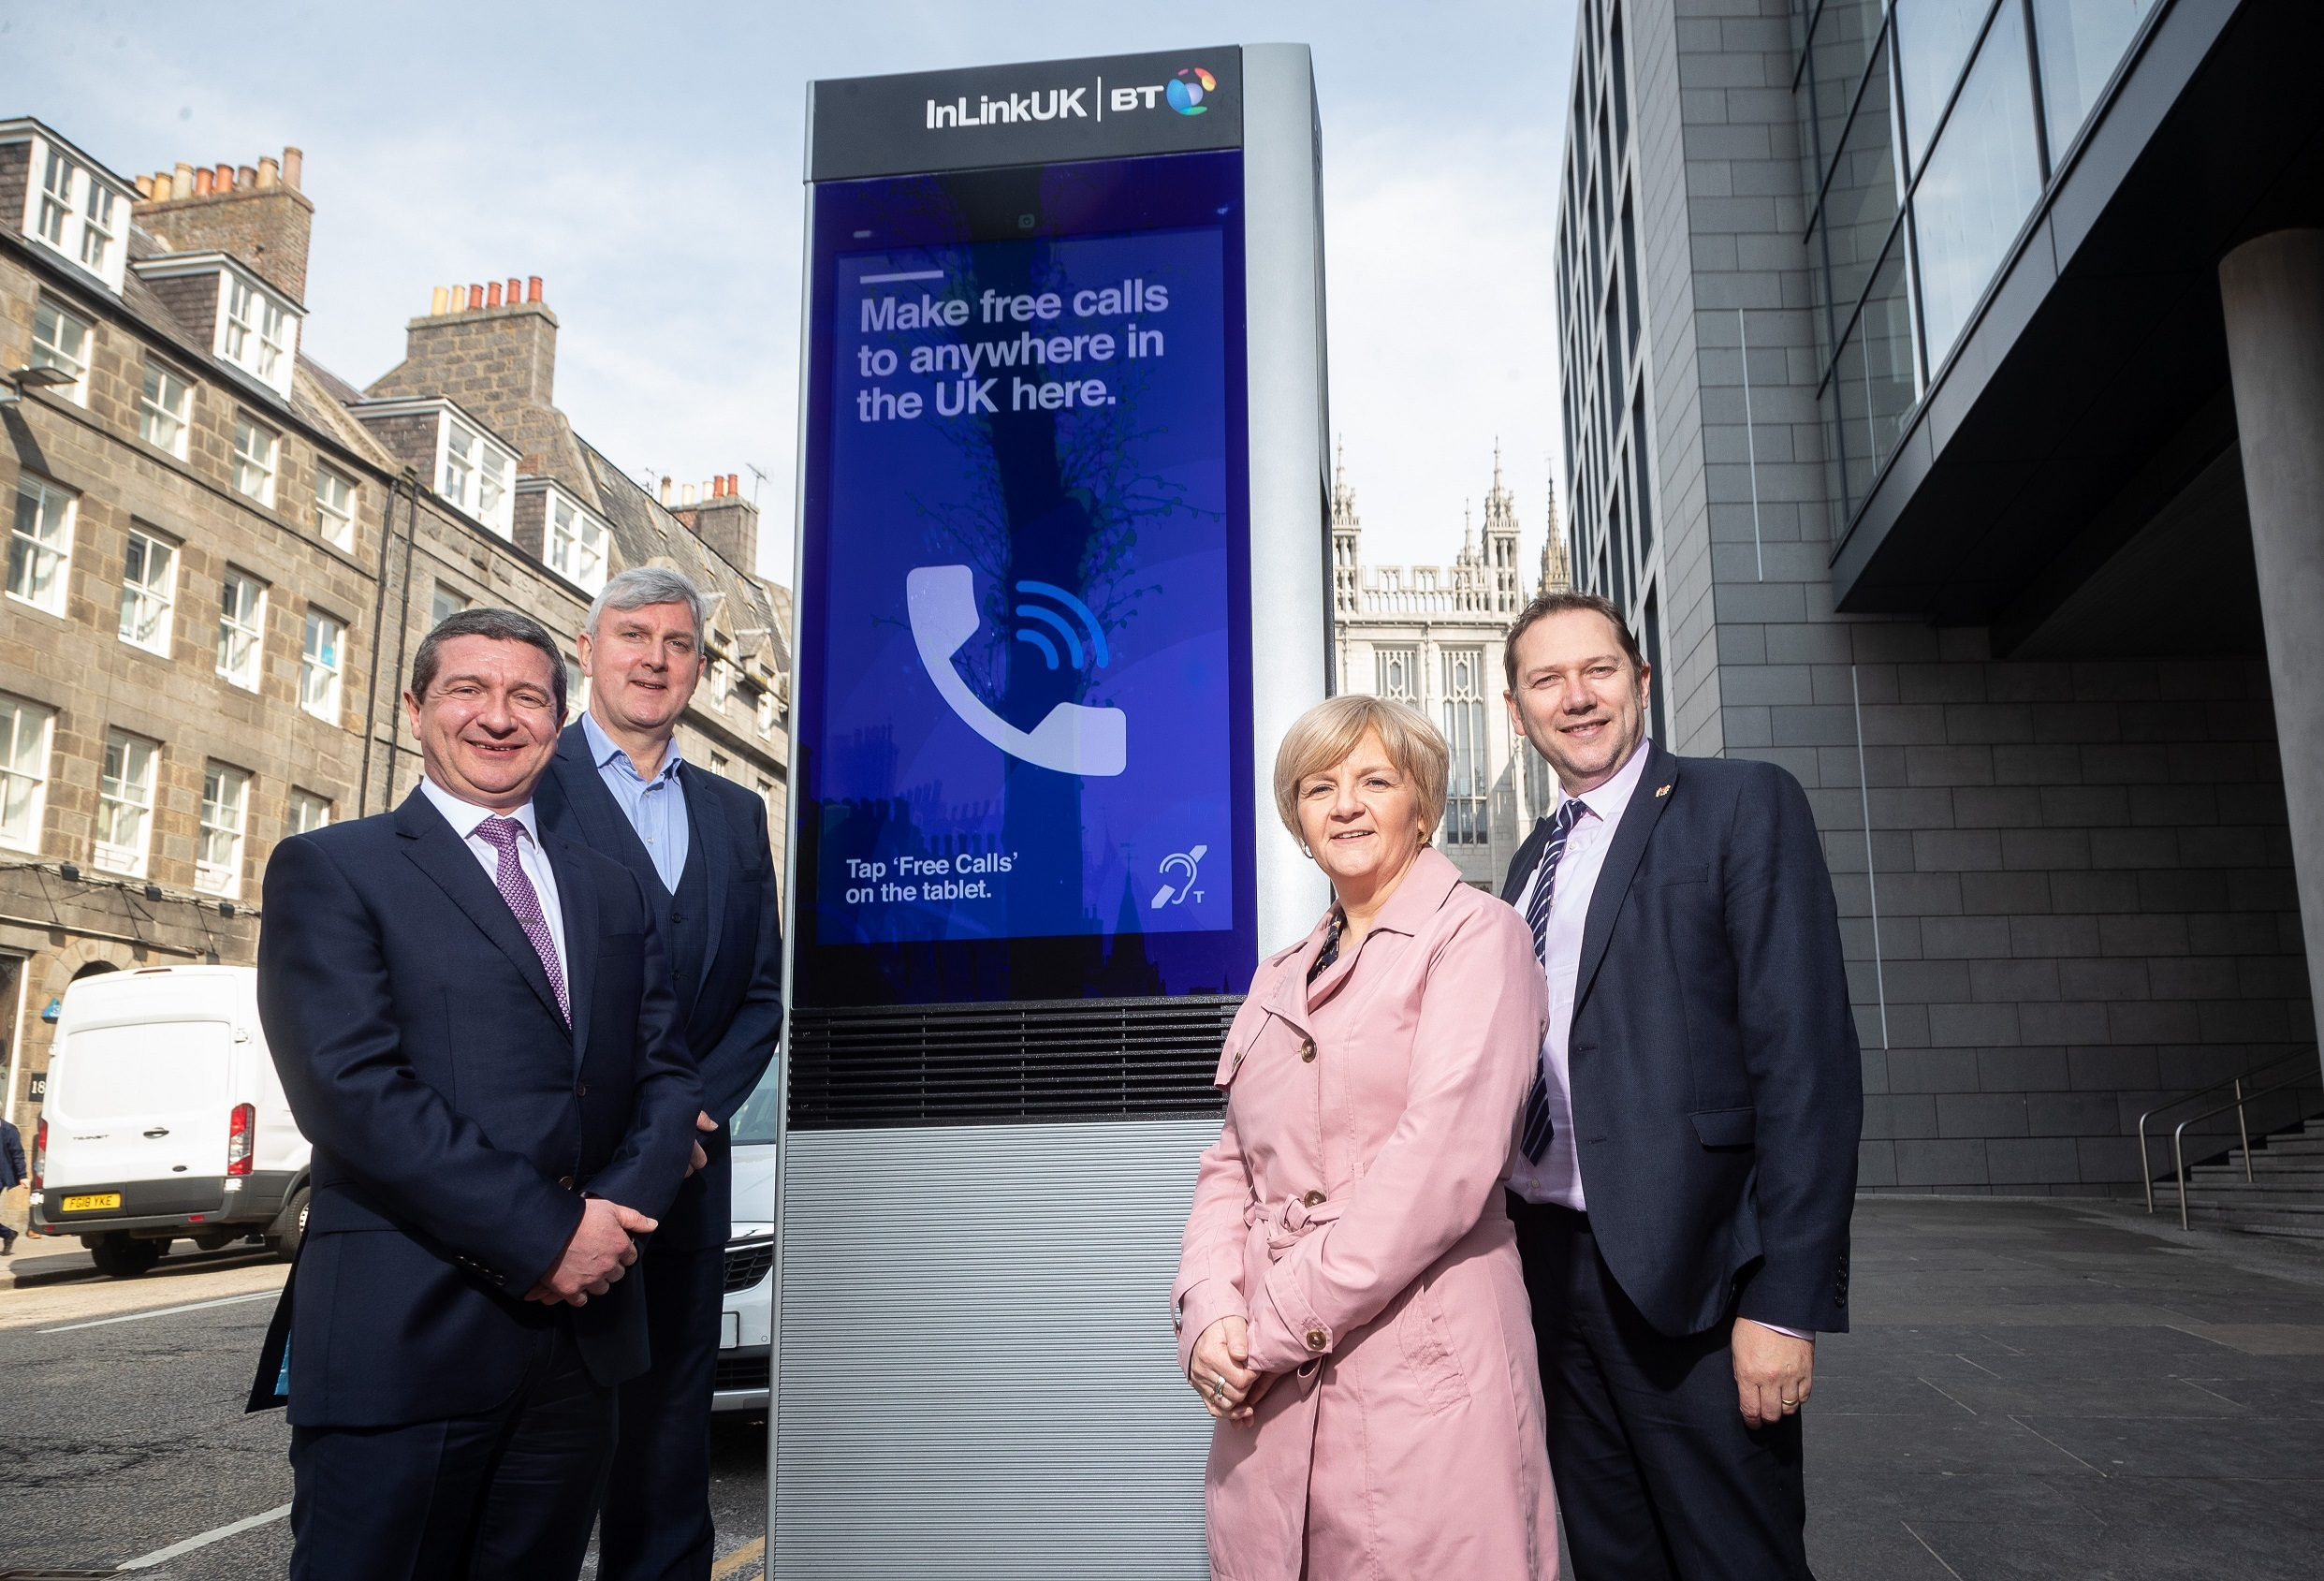 BT press release: Aberdeen to benefit from free ultrafast wi-fi and phone calls